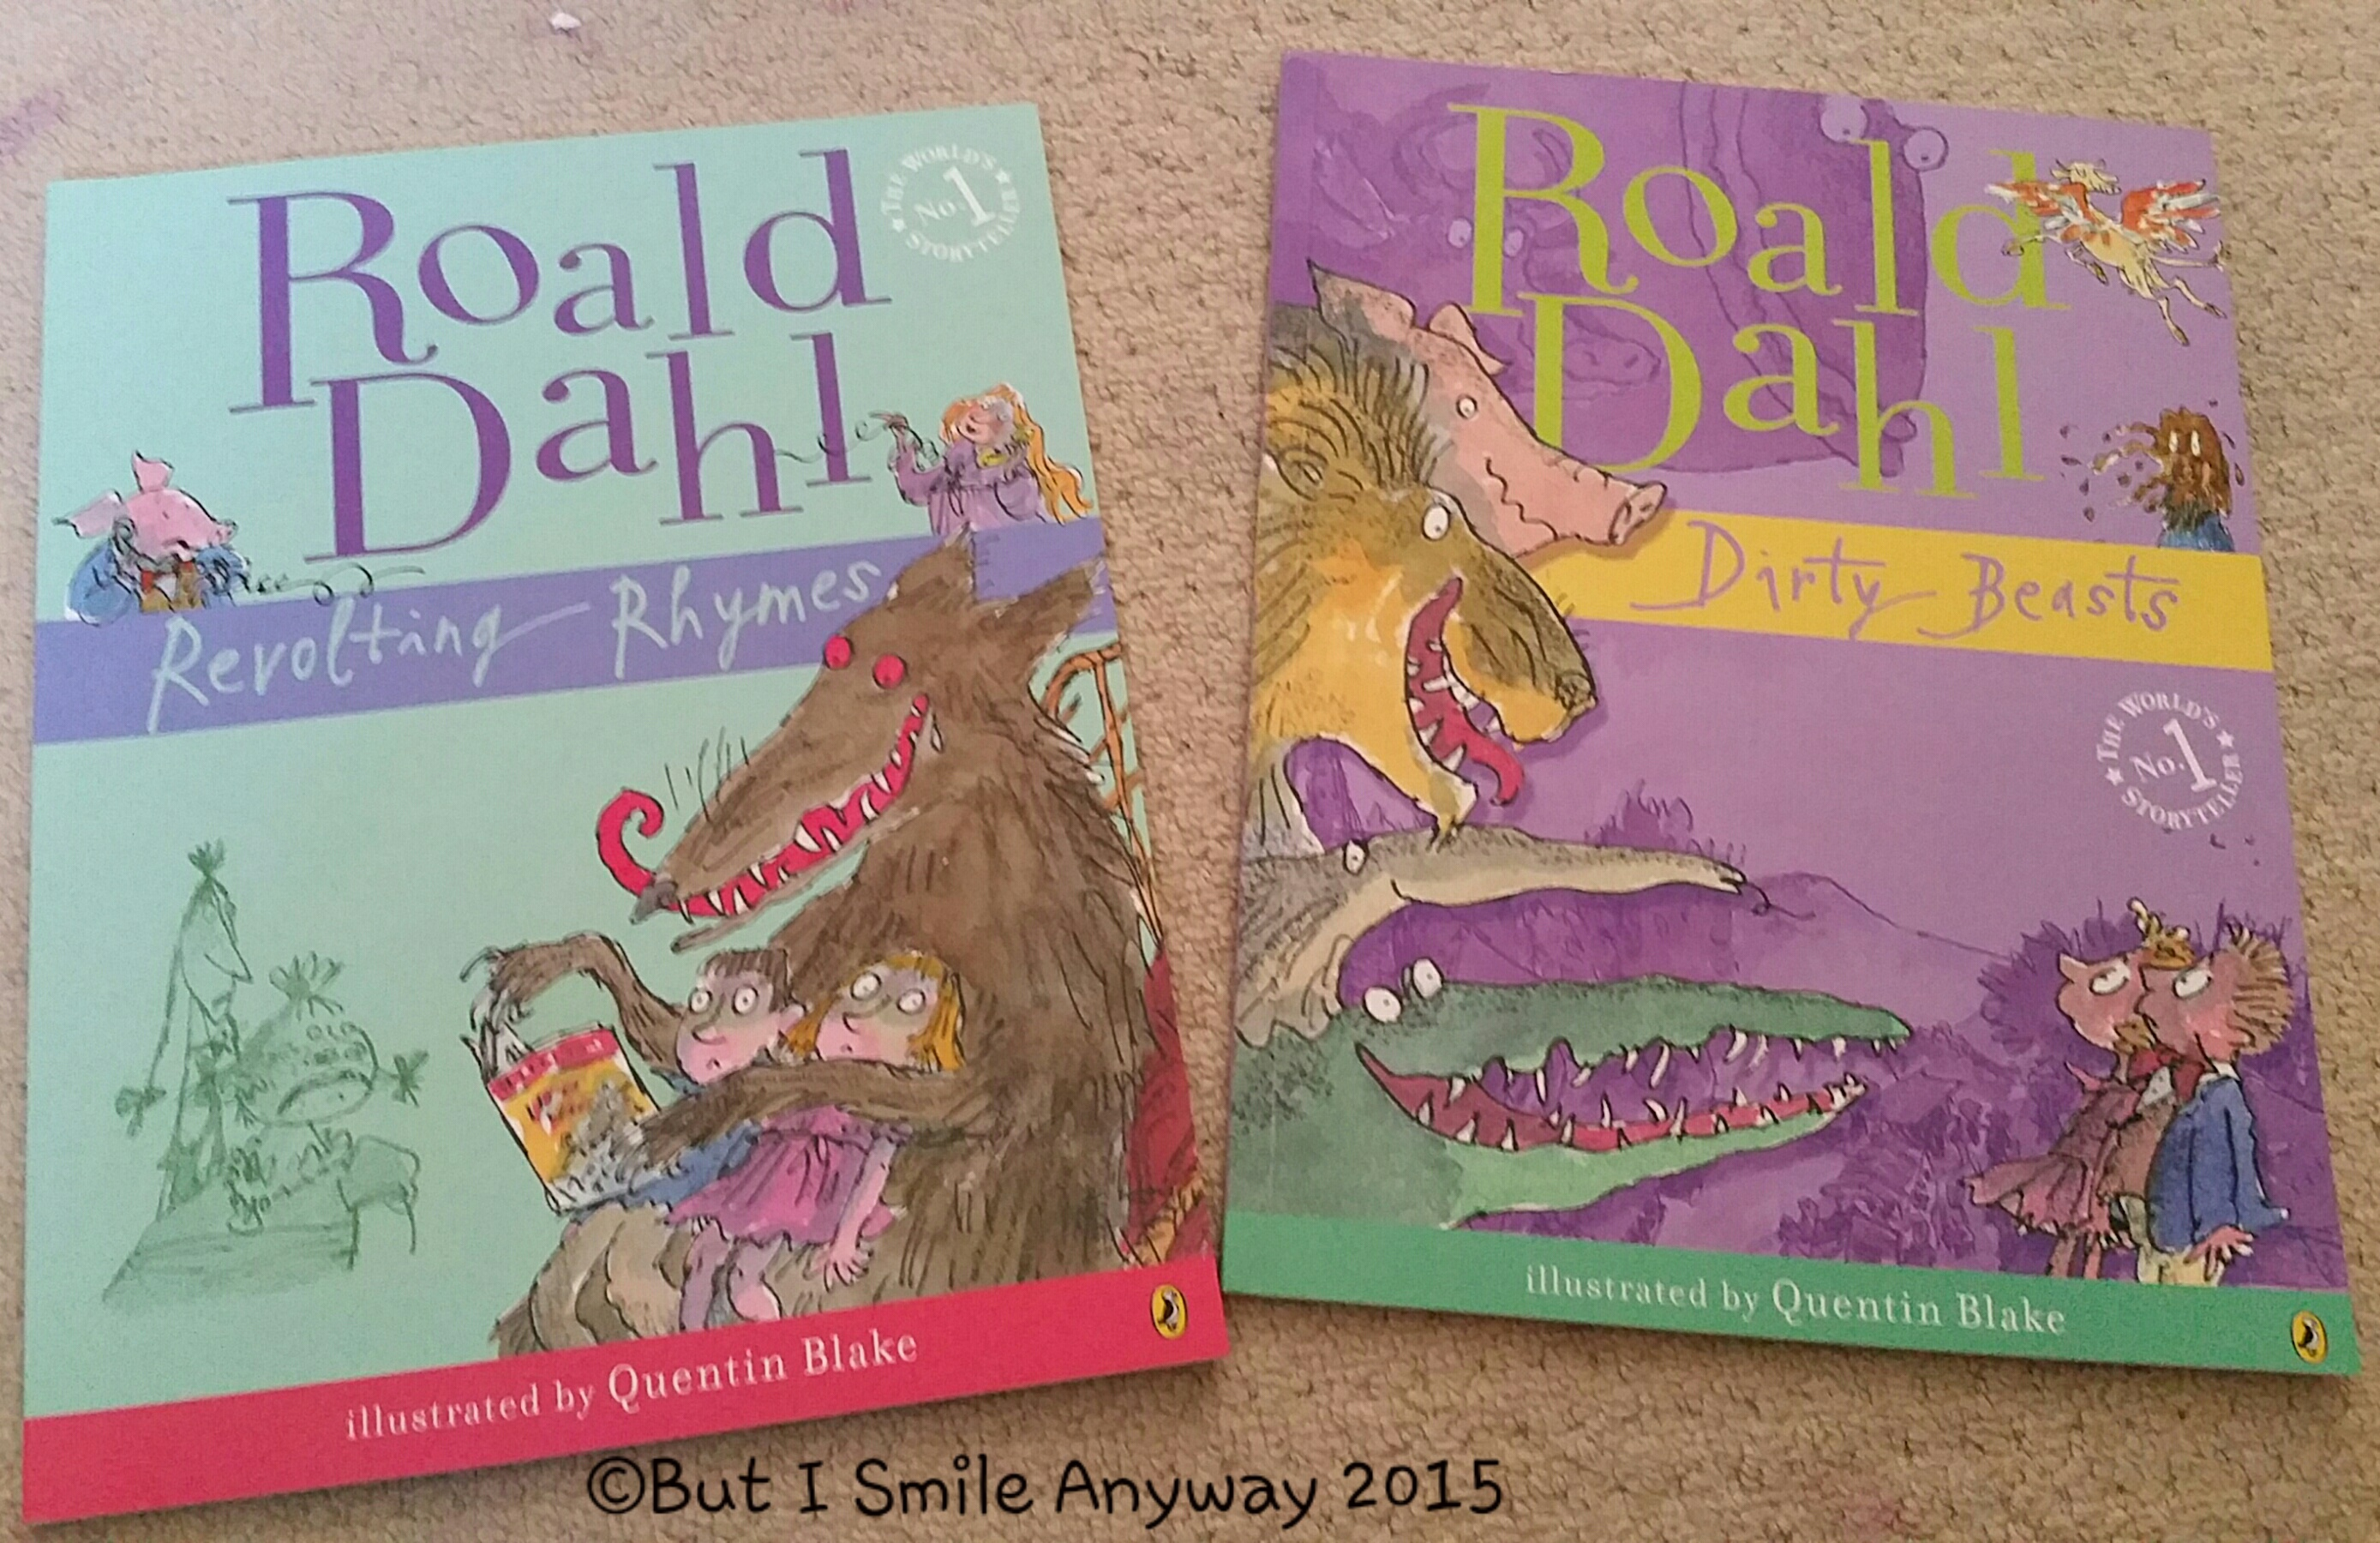 Citaten Roald Dahl : Roald dahl but i smile anyway